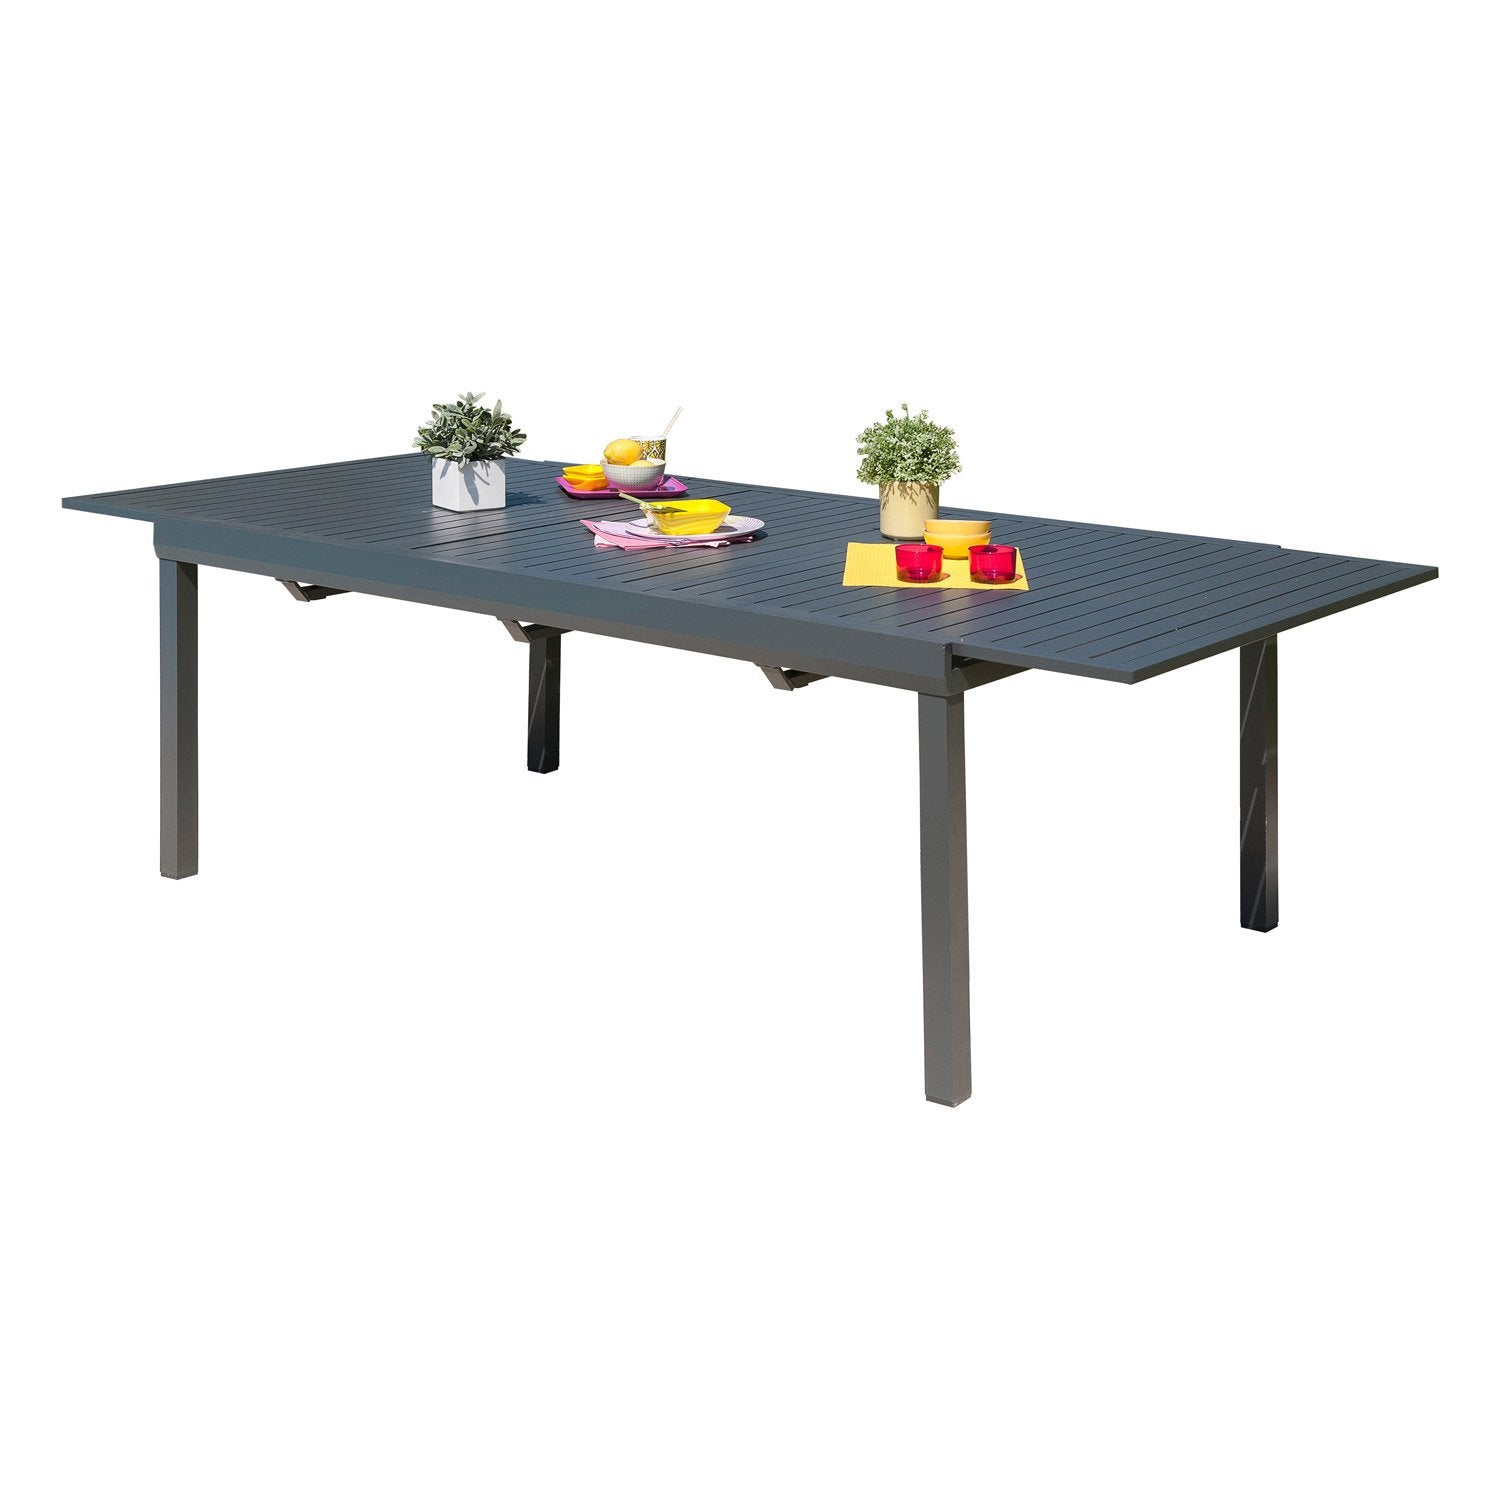 table de jardin miami rectangulaire gris anthracite 8 personnes leroy merlin. Black Bedroom Furniture Sets. Home Design Ideas